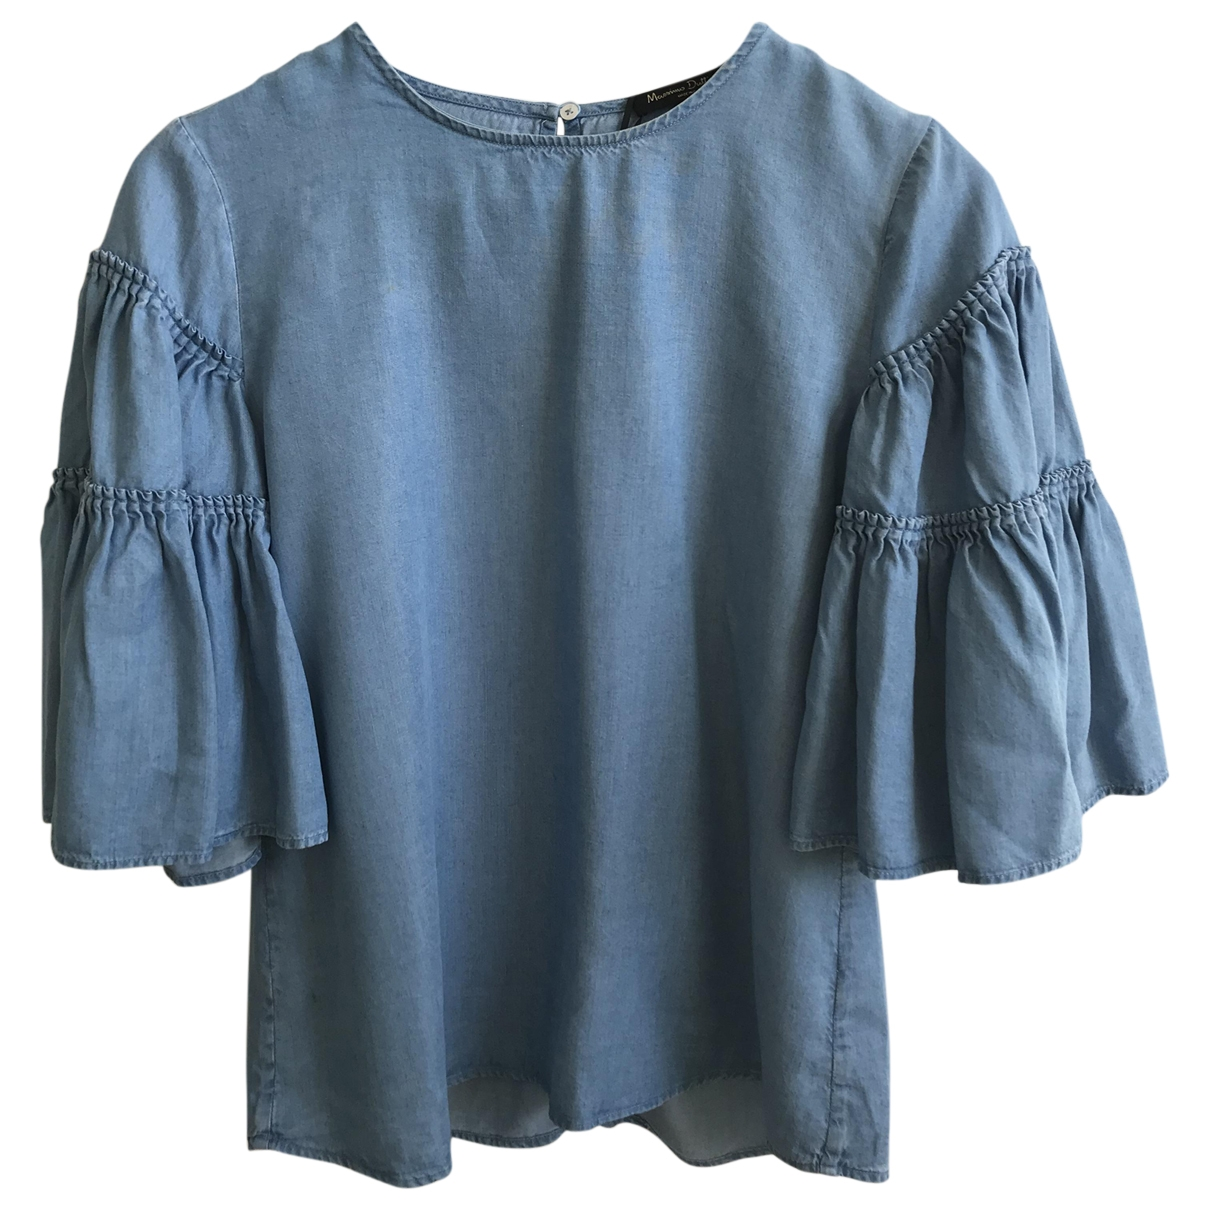 Massimo Dutti \N Blue  top for Women S International